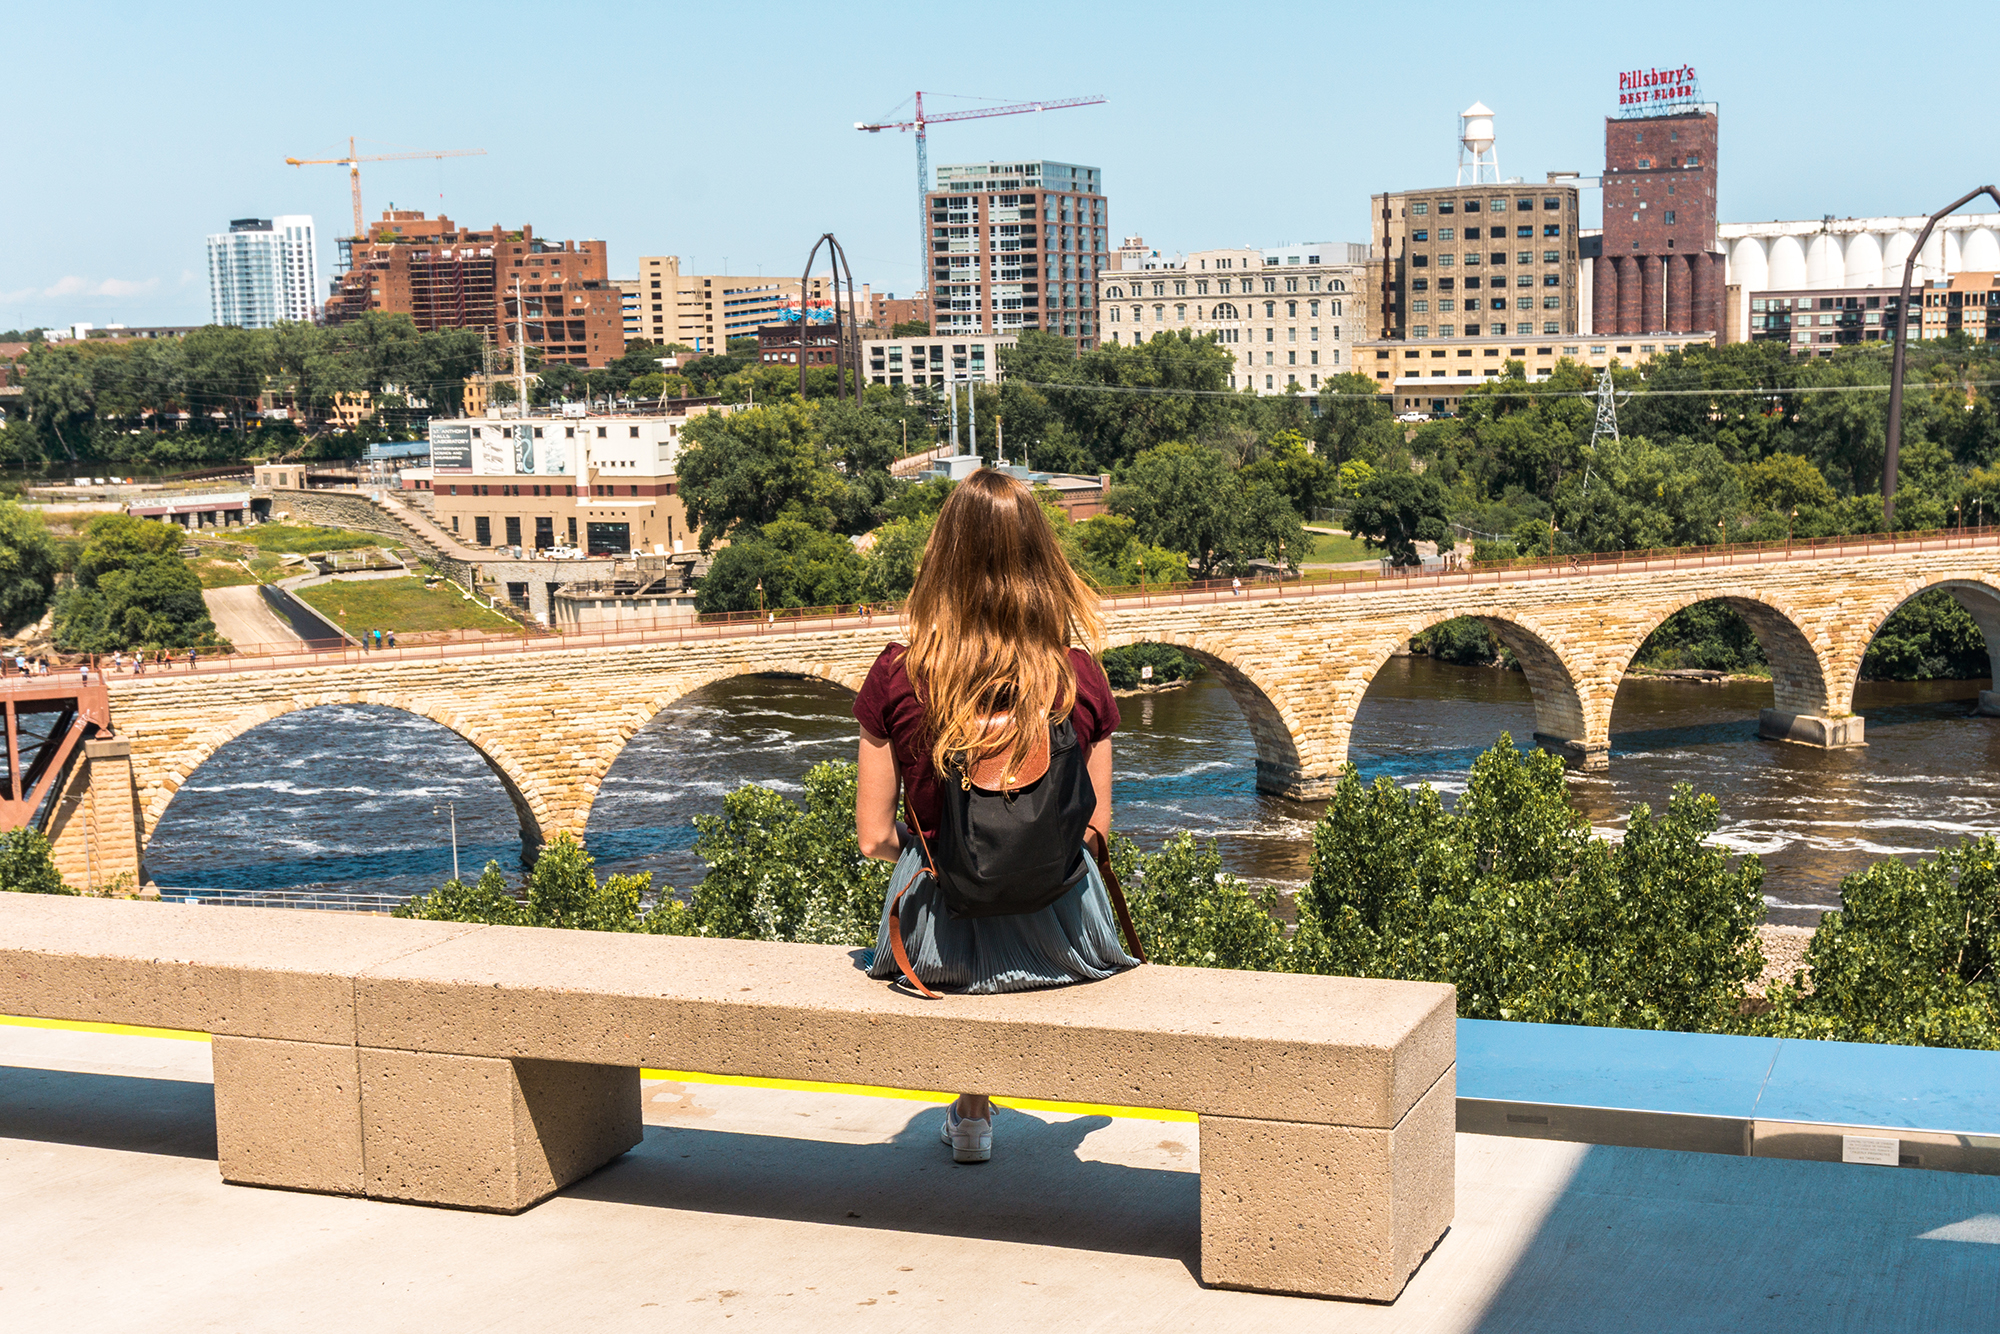 City guide to Minneapolis: best things to do